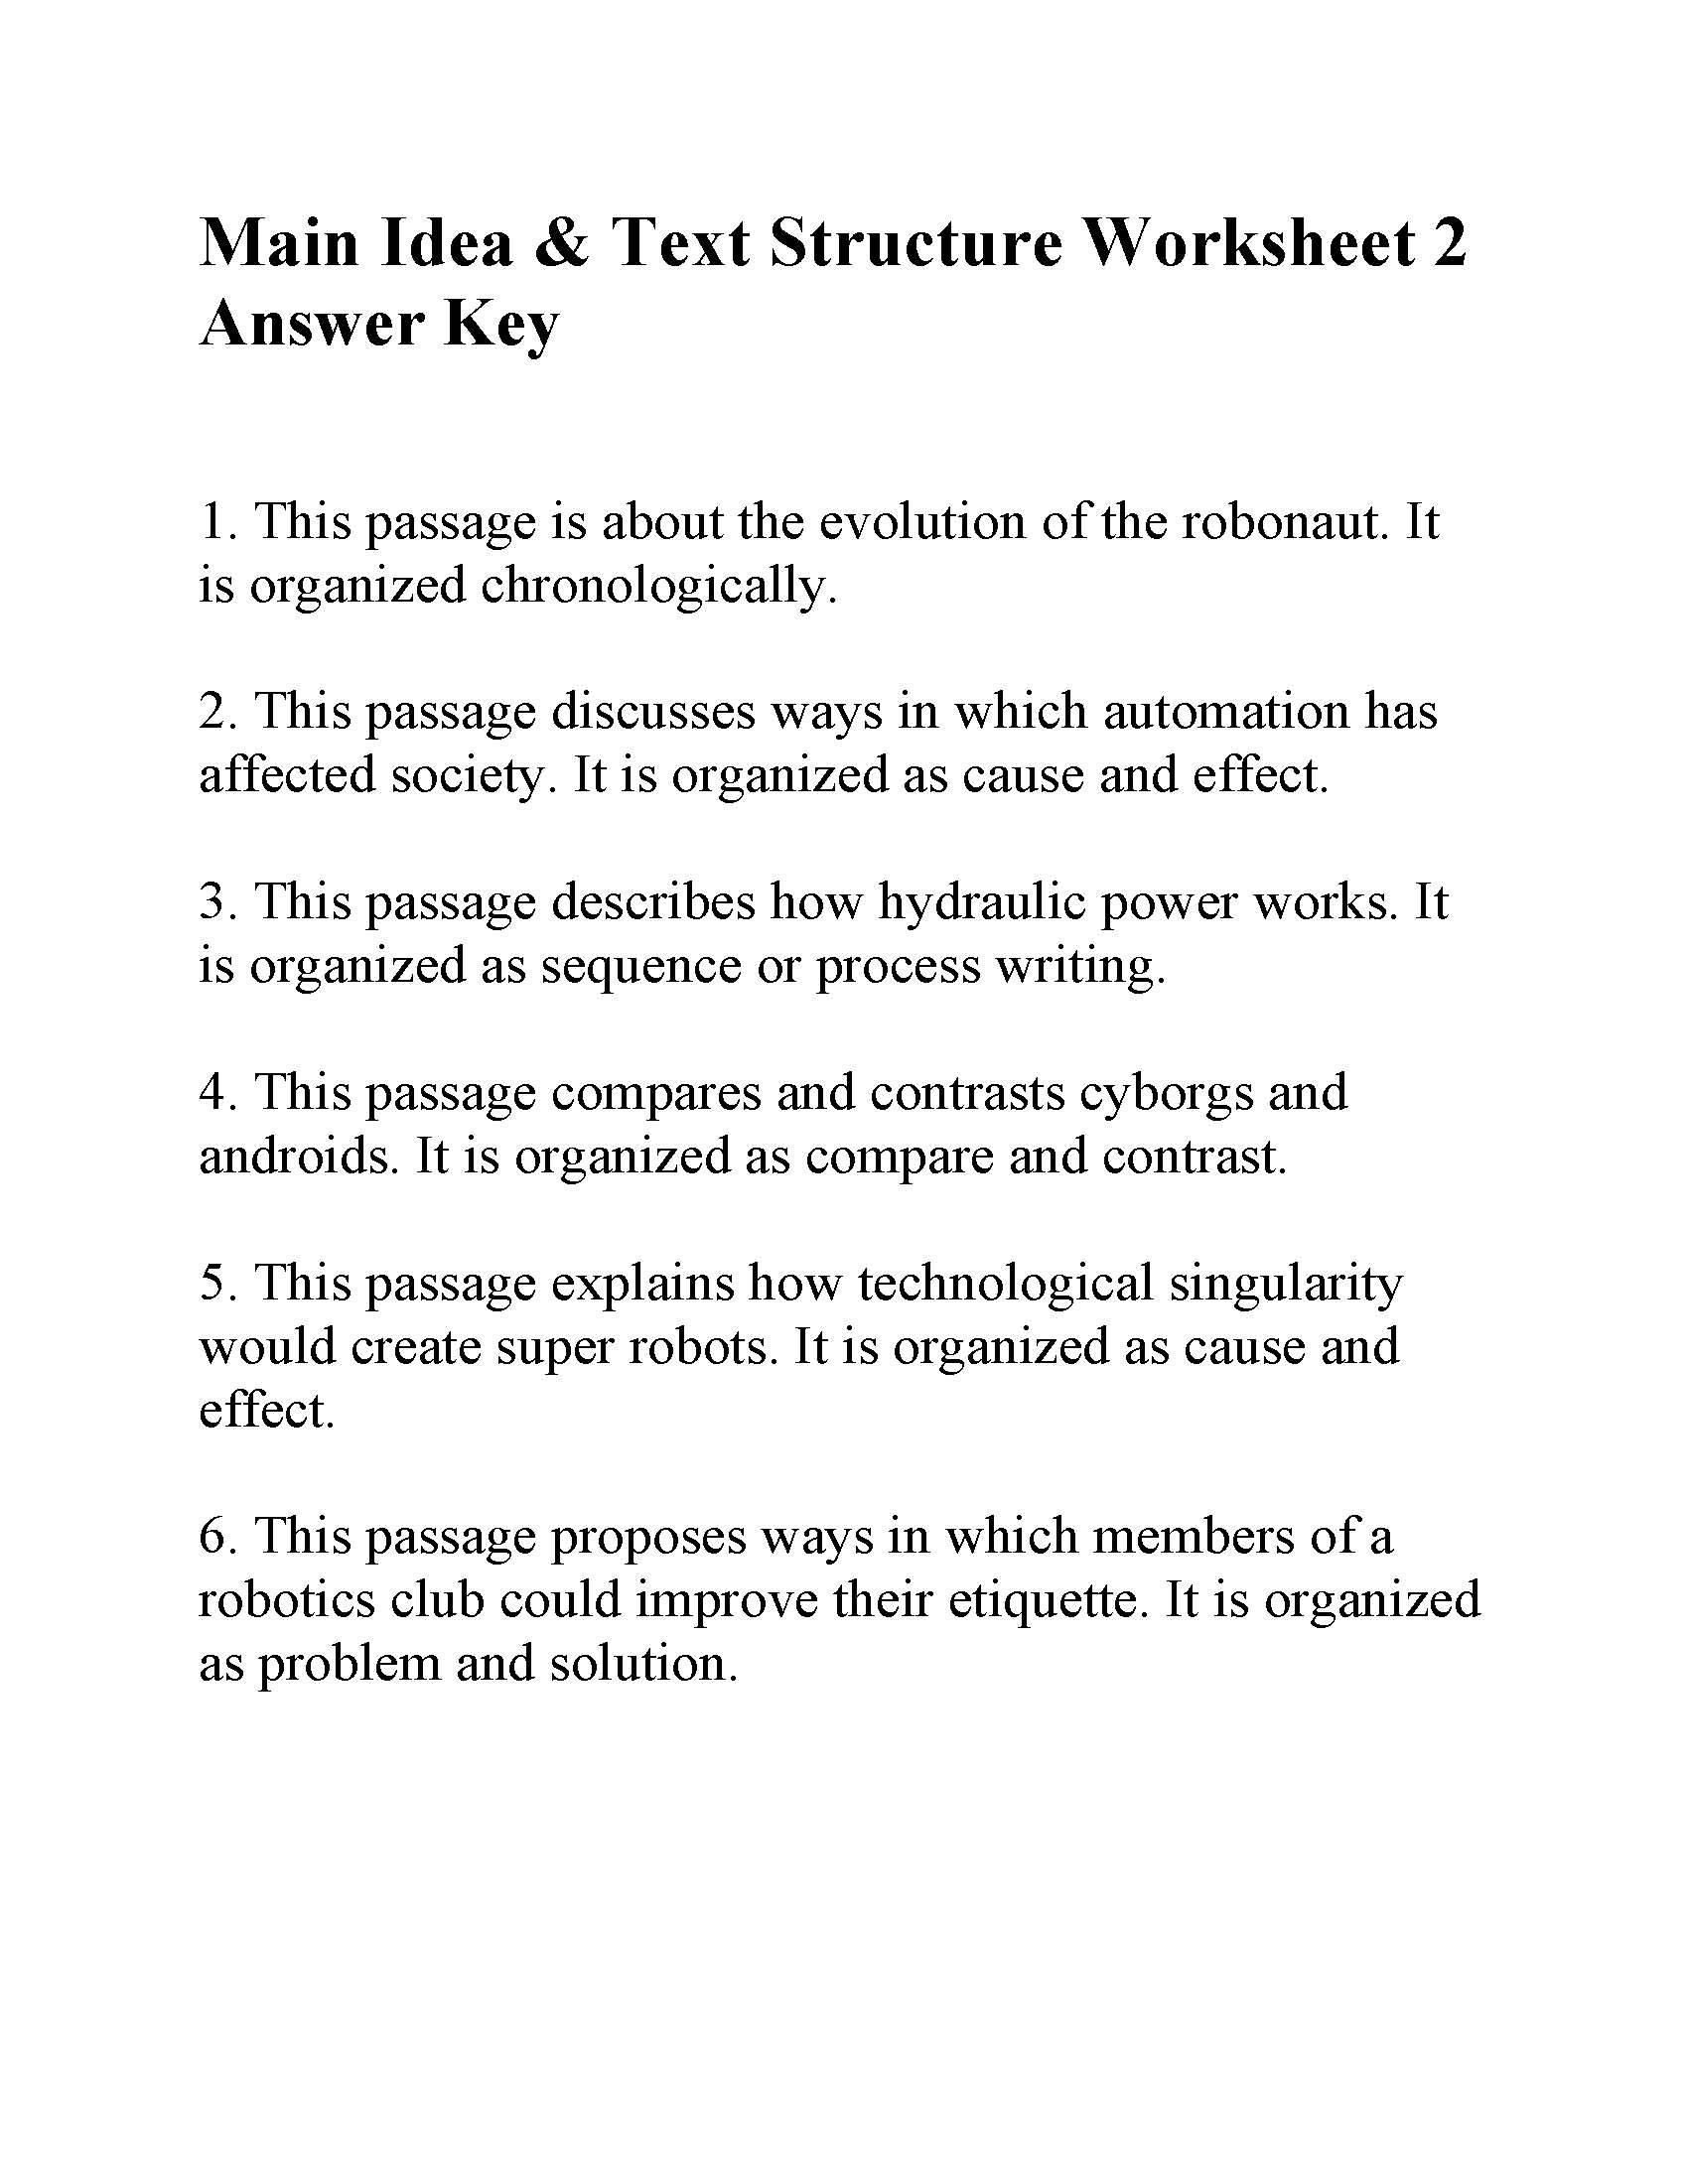 Main Idea And Text Structure Worksheet 2